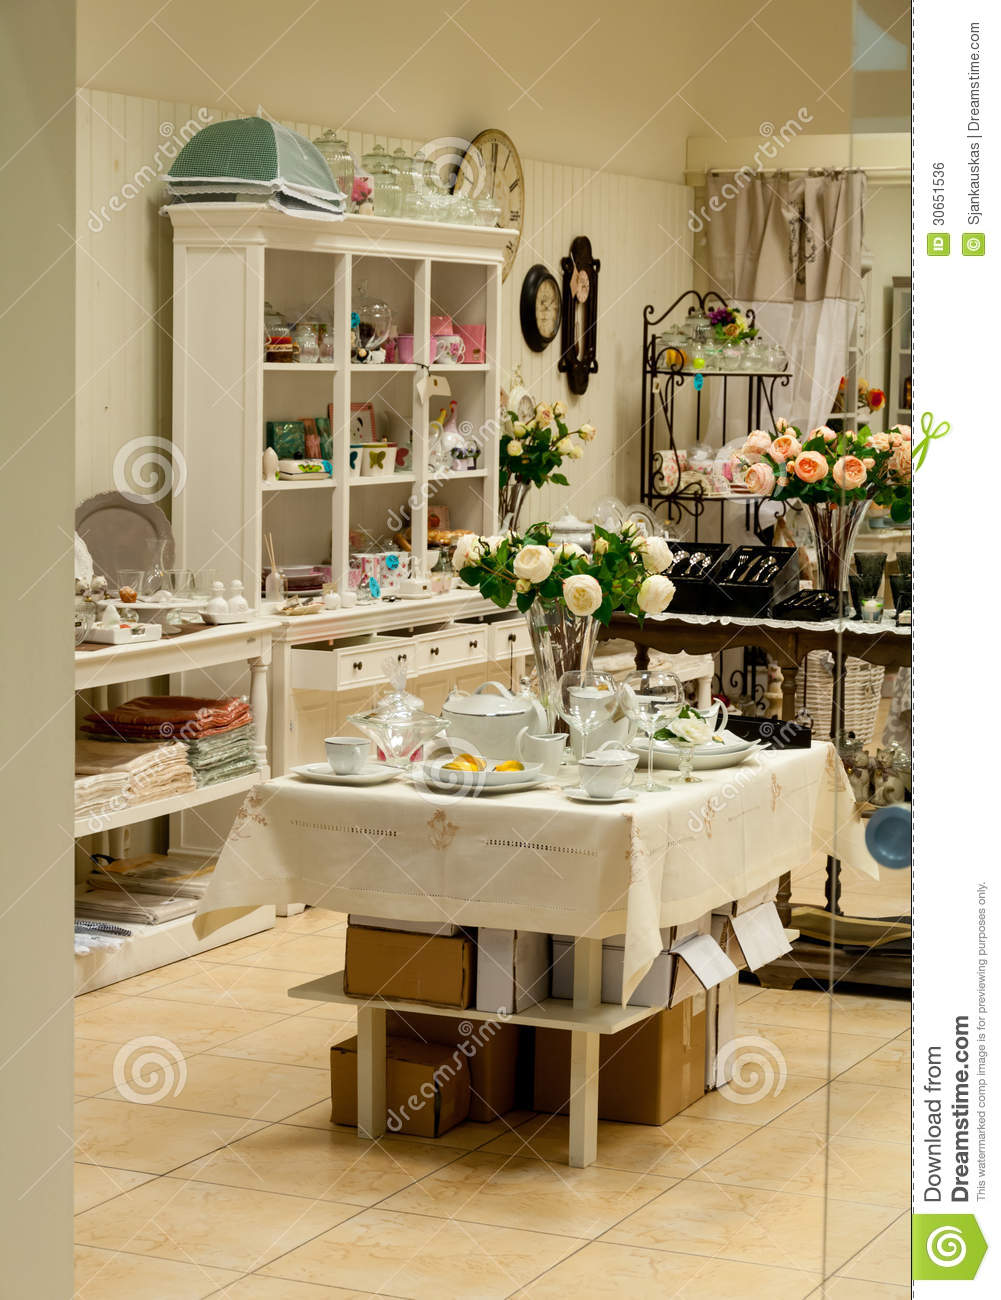 Home decor and dishes shop royalty free stock image for Store for home decor